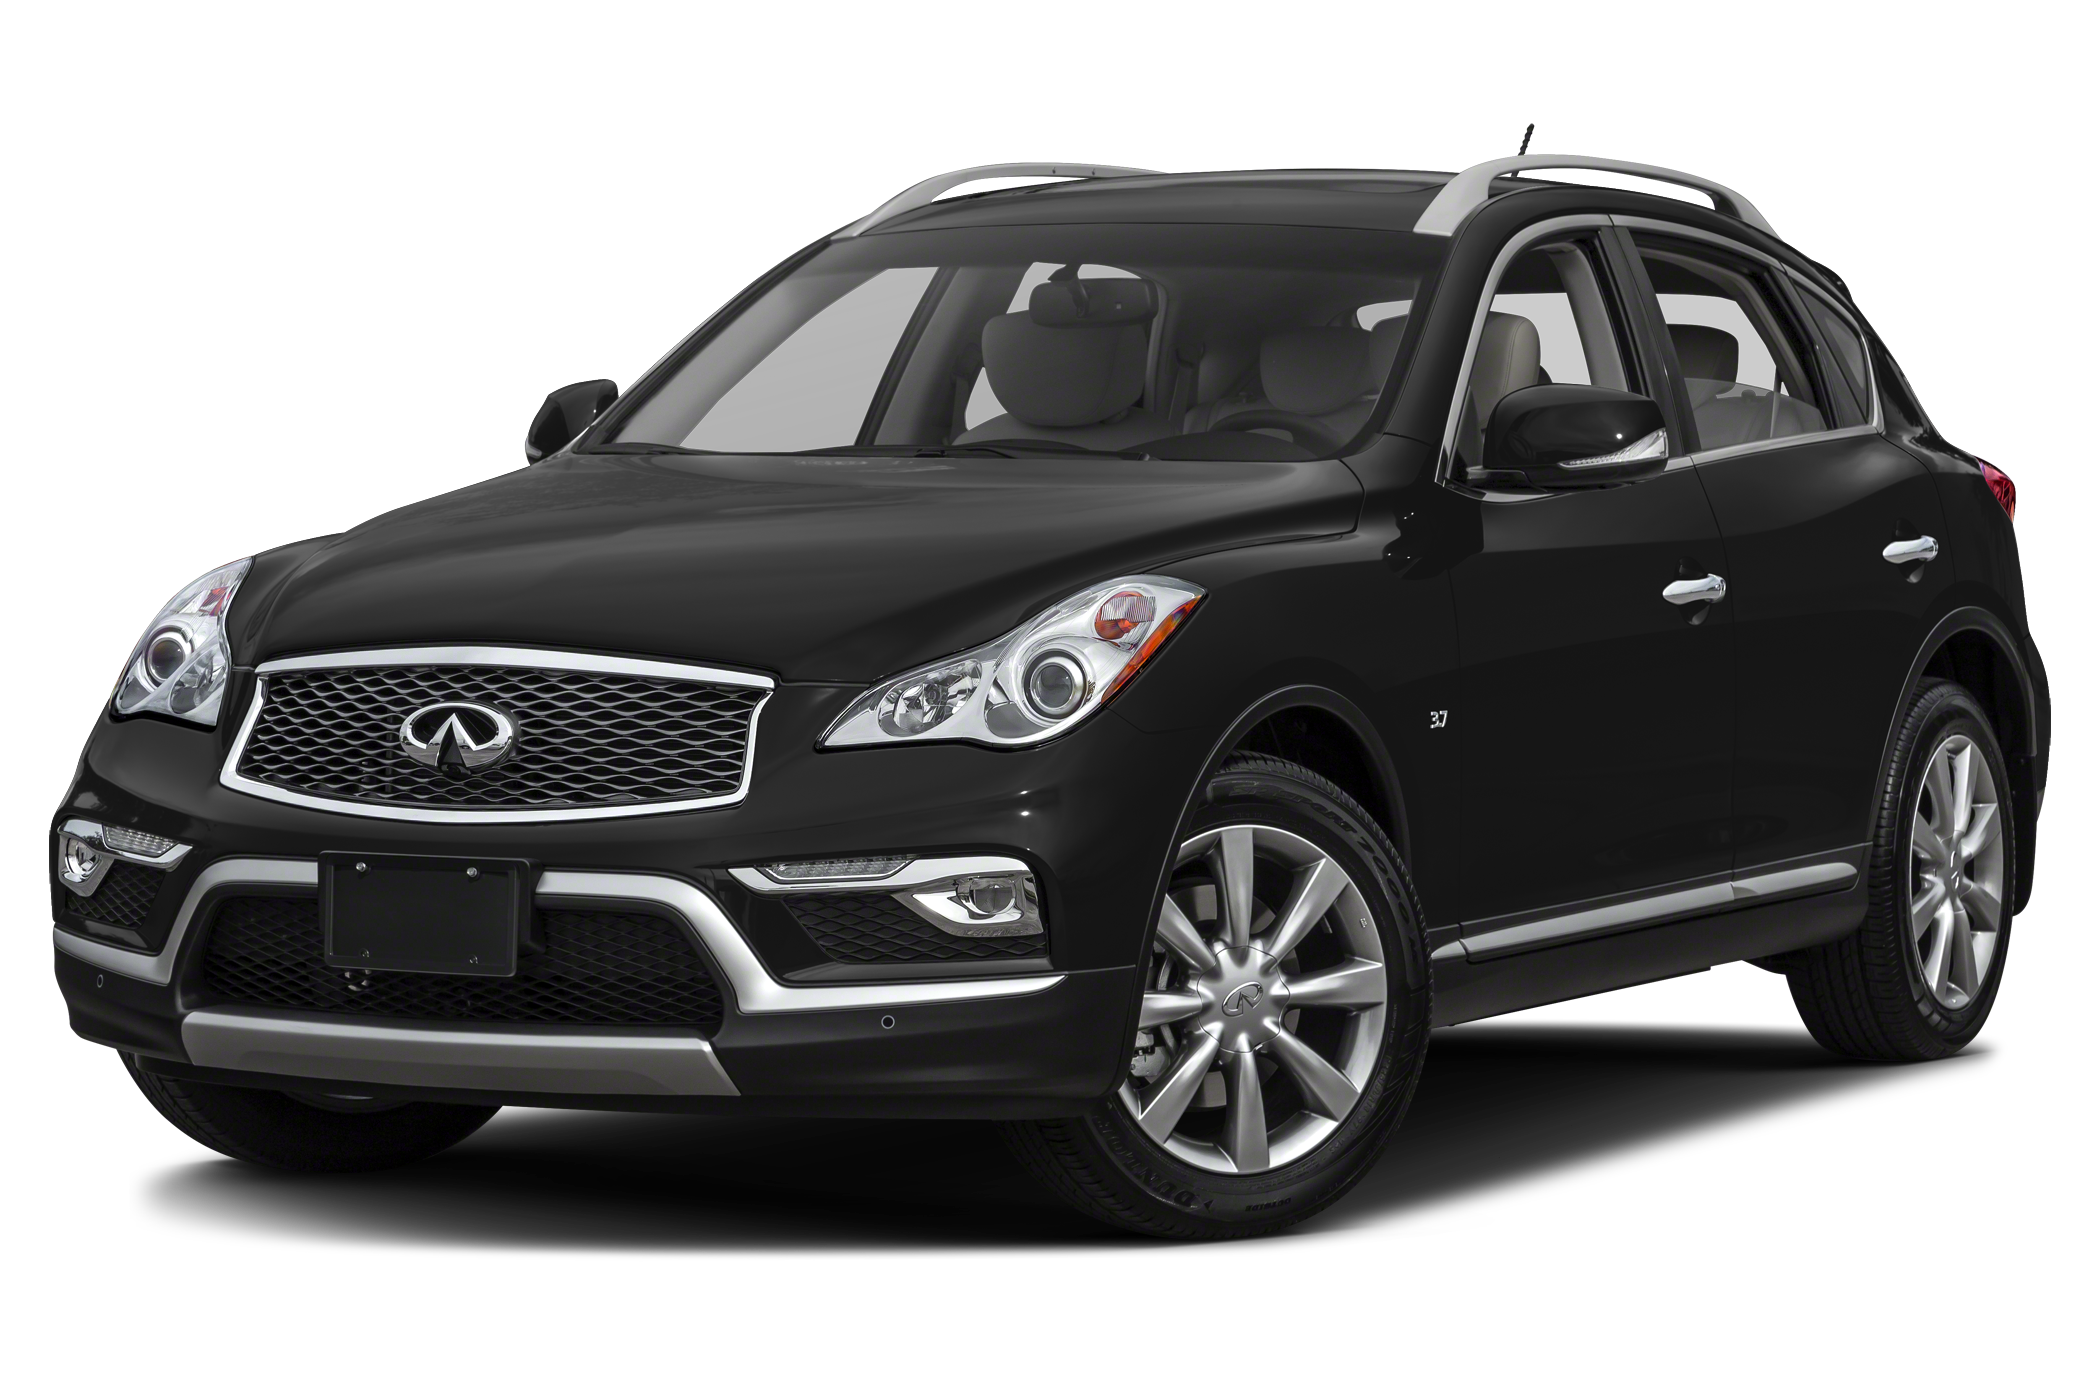 infinity of review infiniti vehicle suv expert used